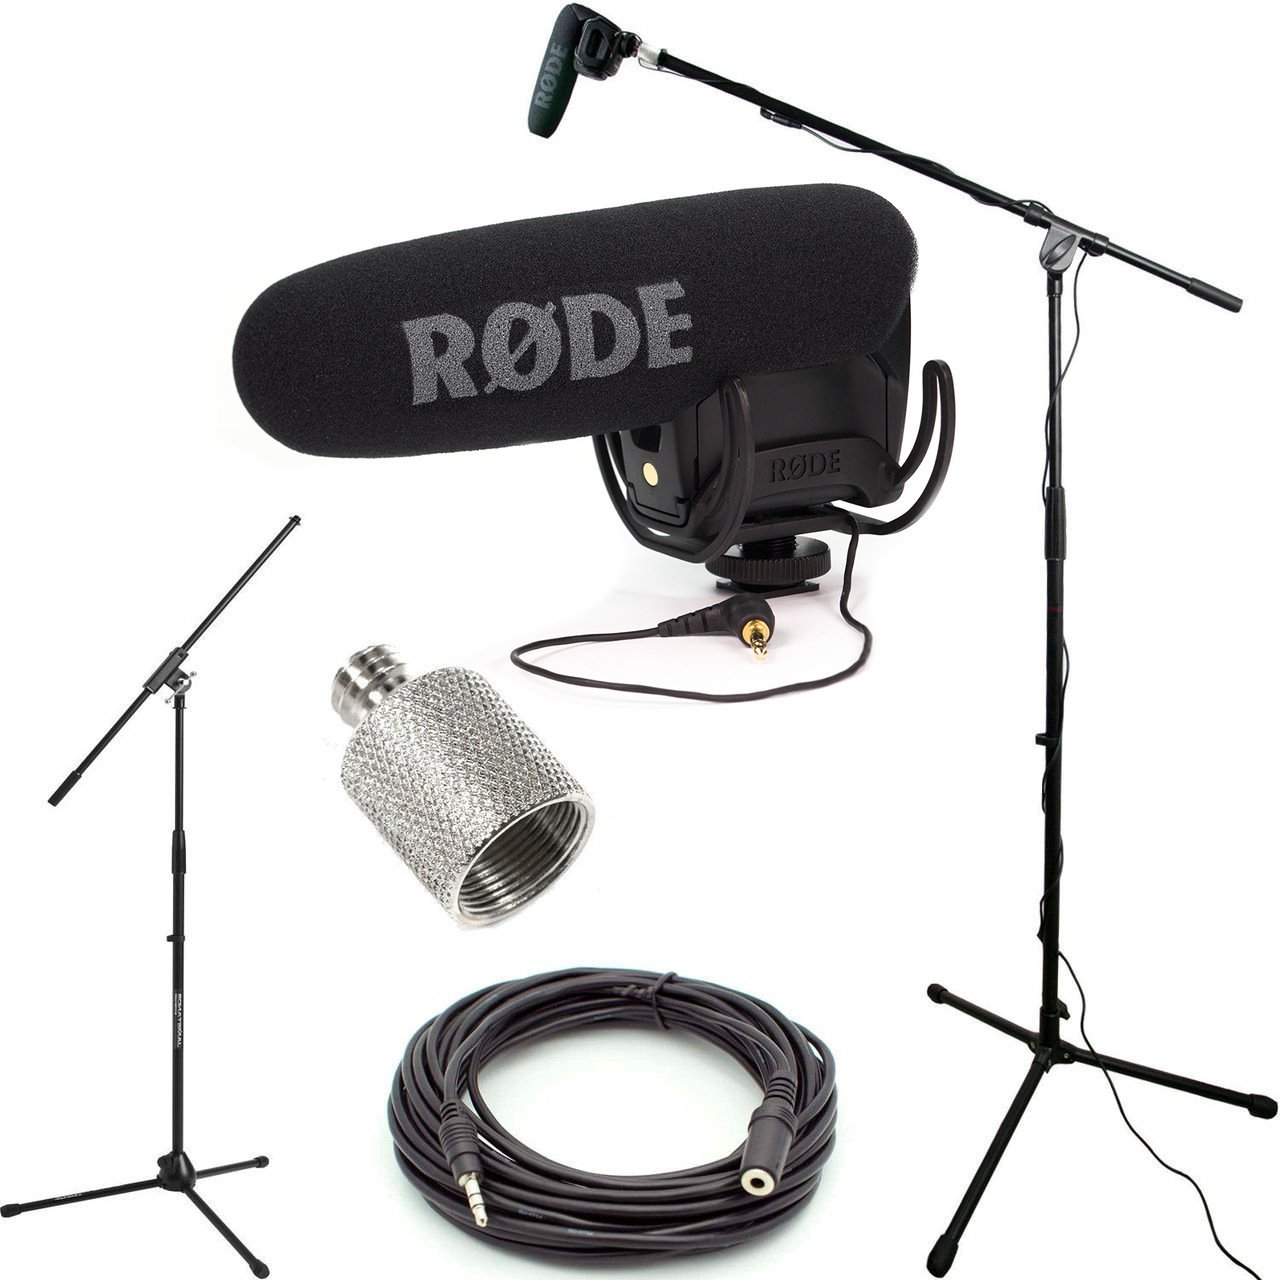 RODE VideoMic Pro R Studio Boom Kit - VMPR, Boom Stand, Adapter, and 25' Cable